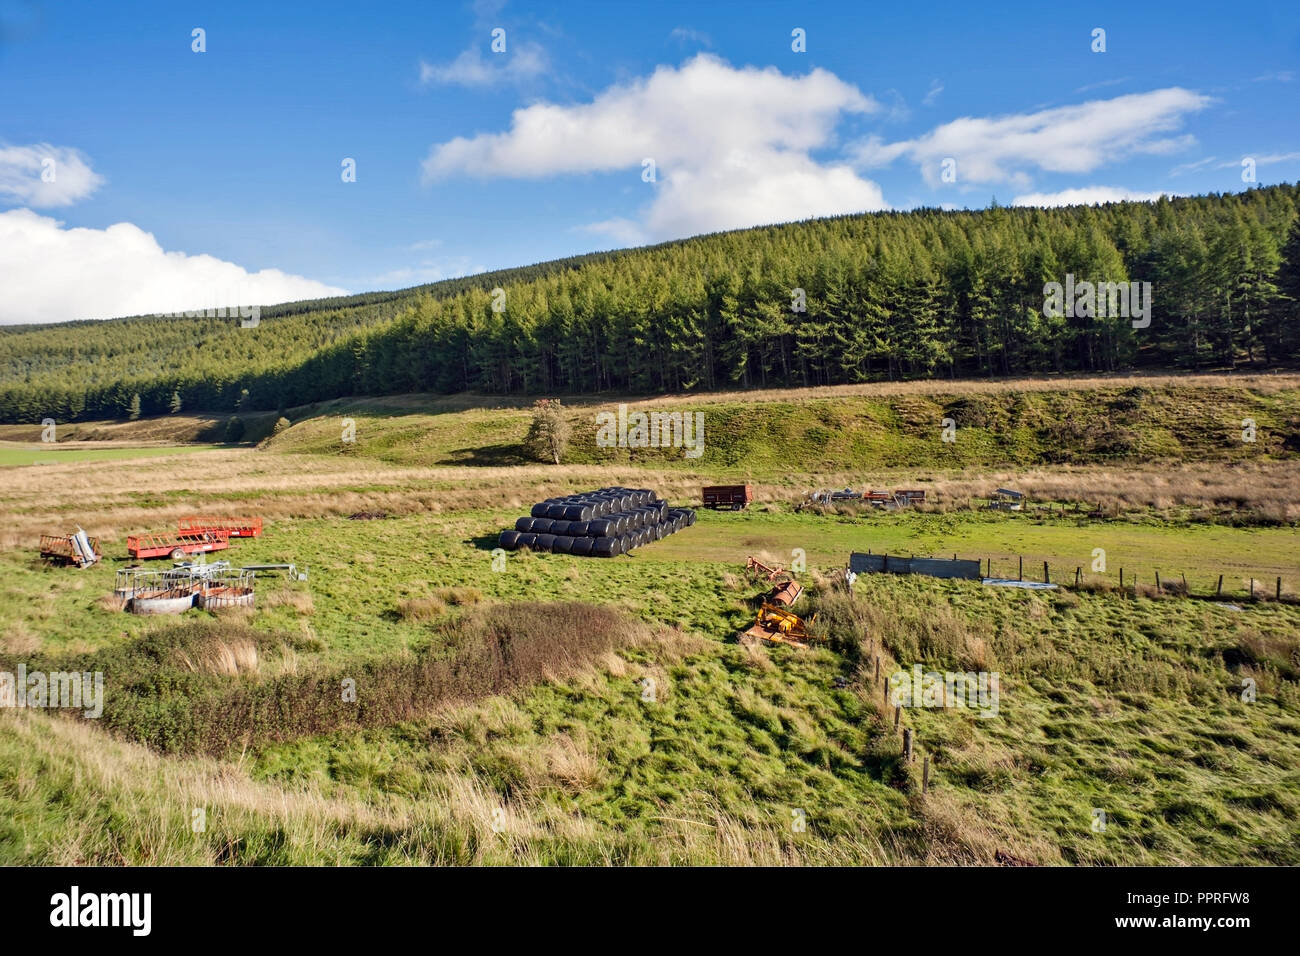 Straw bales and farming equipment  in field on hill farm, September,  Angus, Scotland with conifer forest in background. - Stock Image